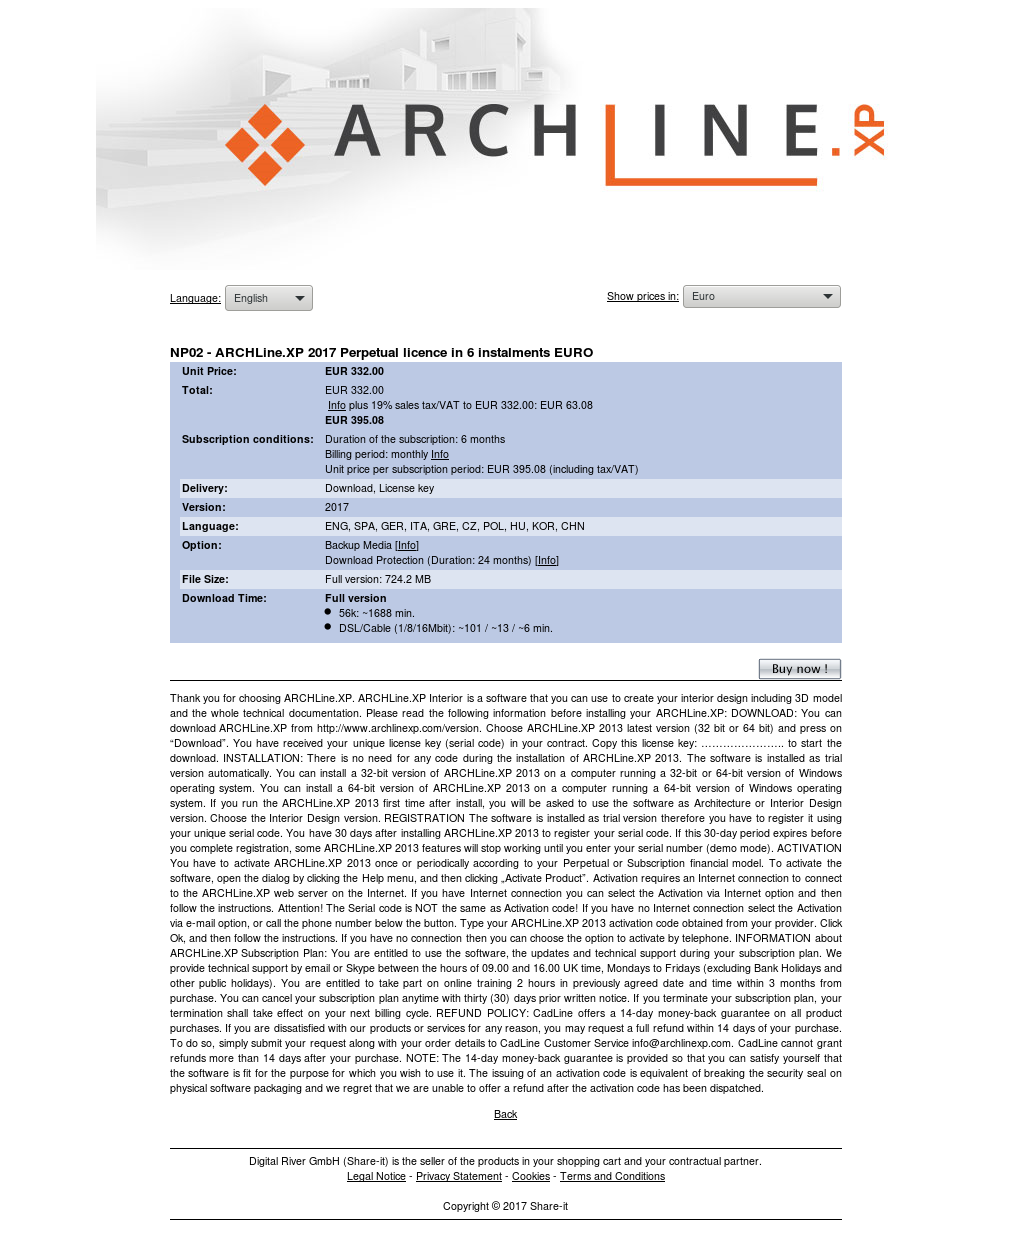 NP02 - ARCHLine.XP 2017 Perpetual licence in 6 instalments EURO